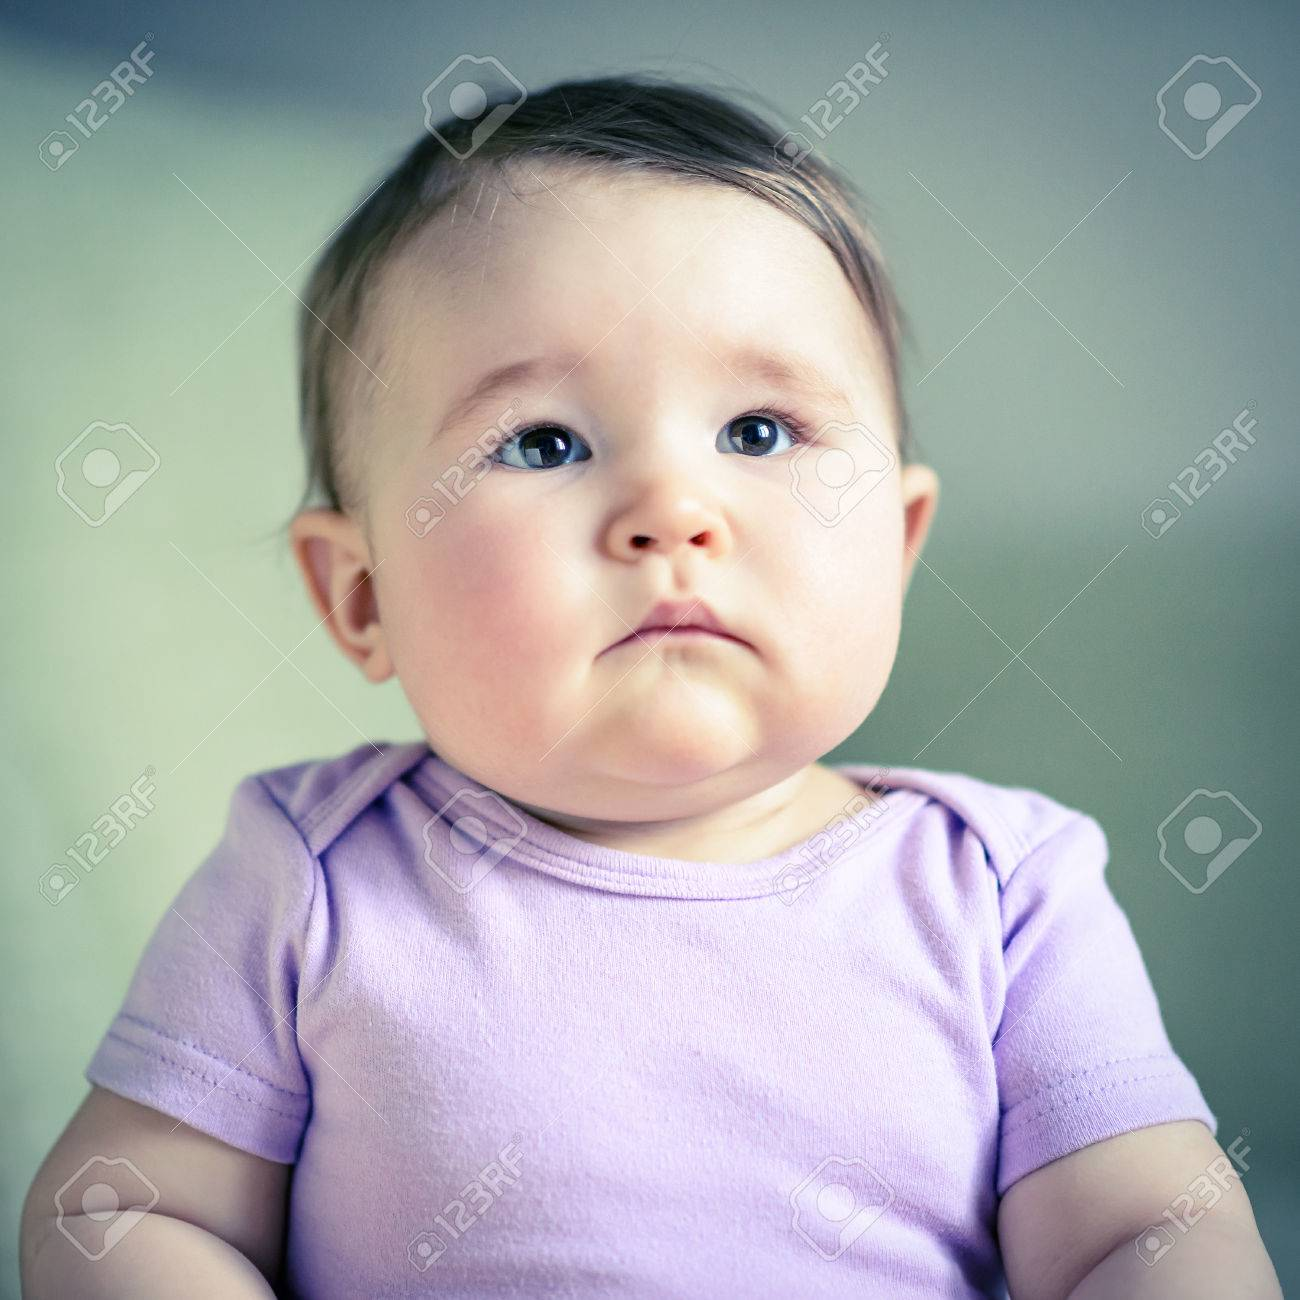 Stock photo thoughtful and serious nice baby girl child close up